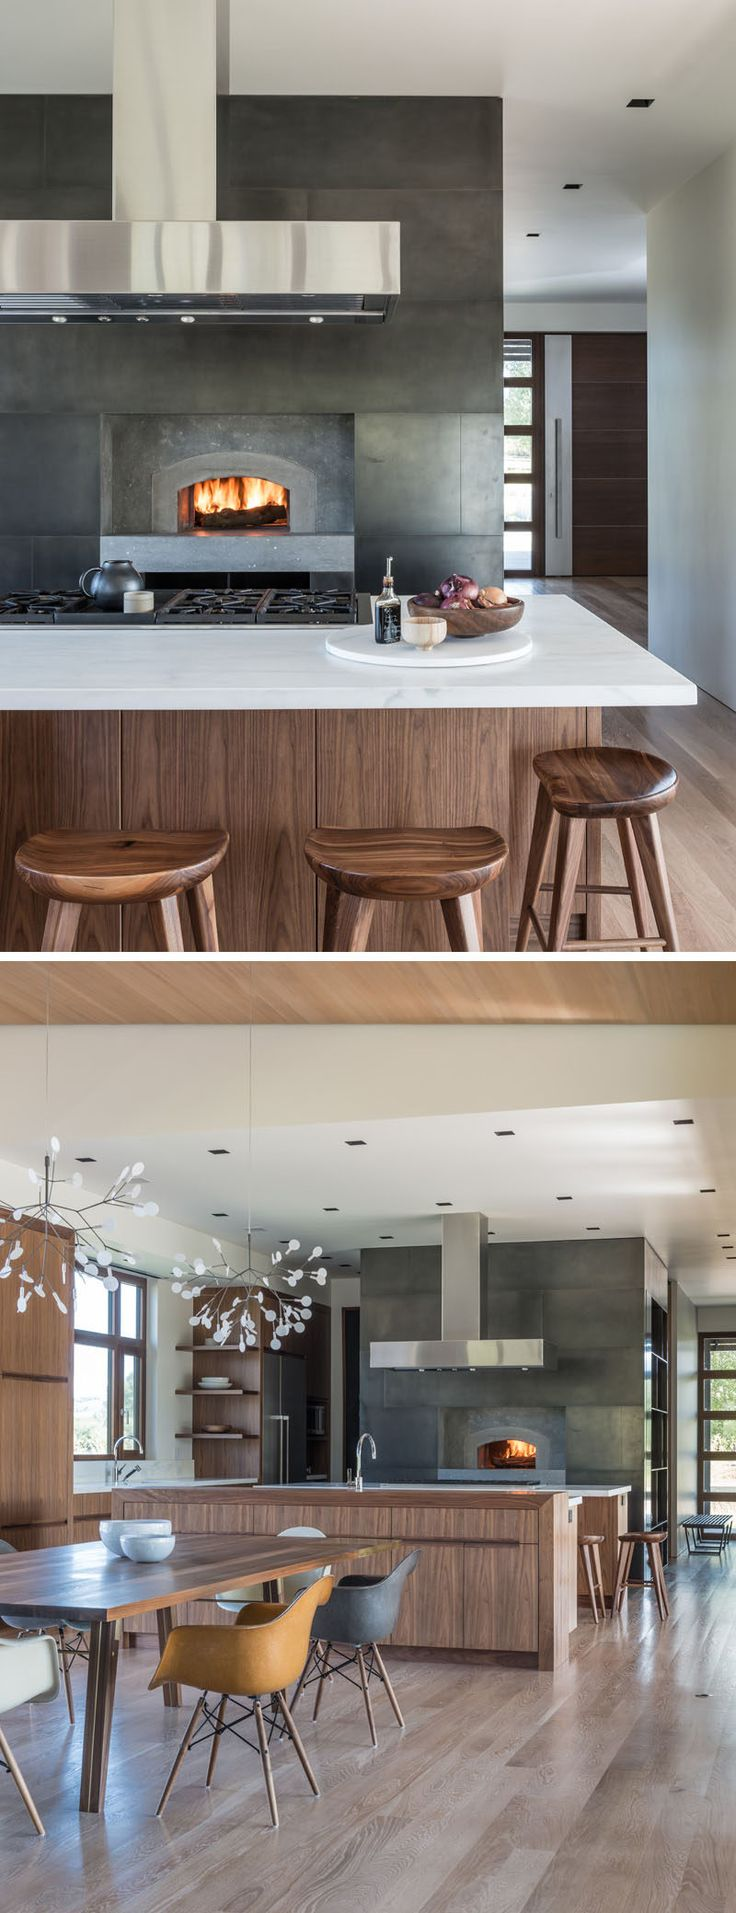 Interior Design Kitchens best extension interior design ideas images - amazing home design